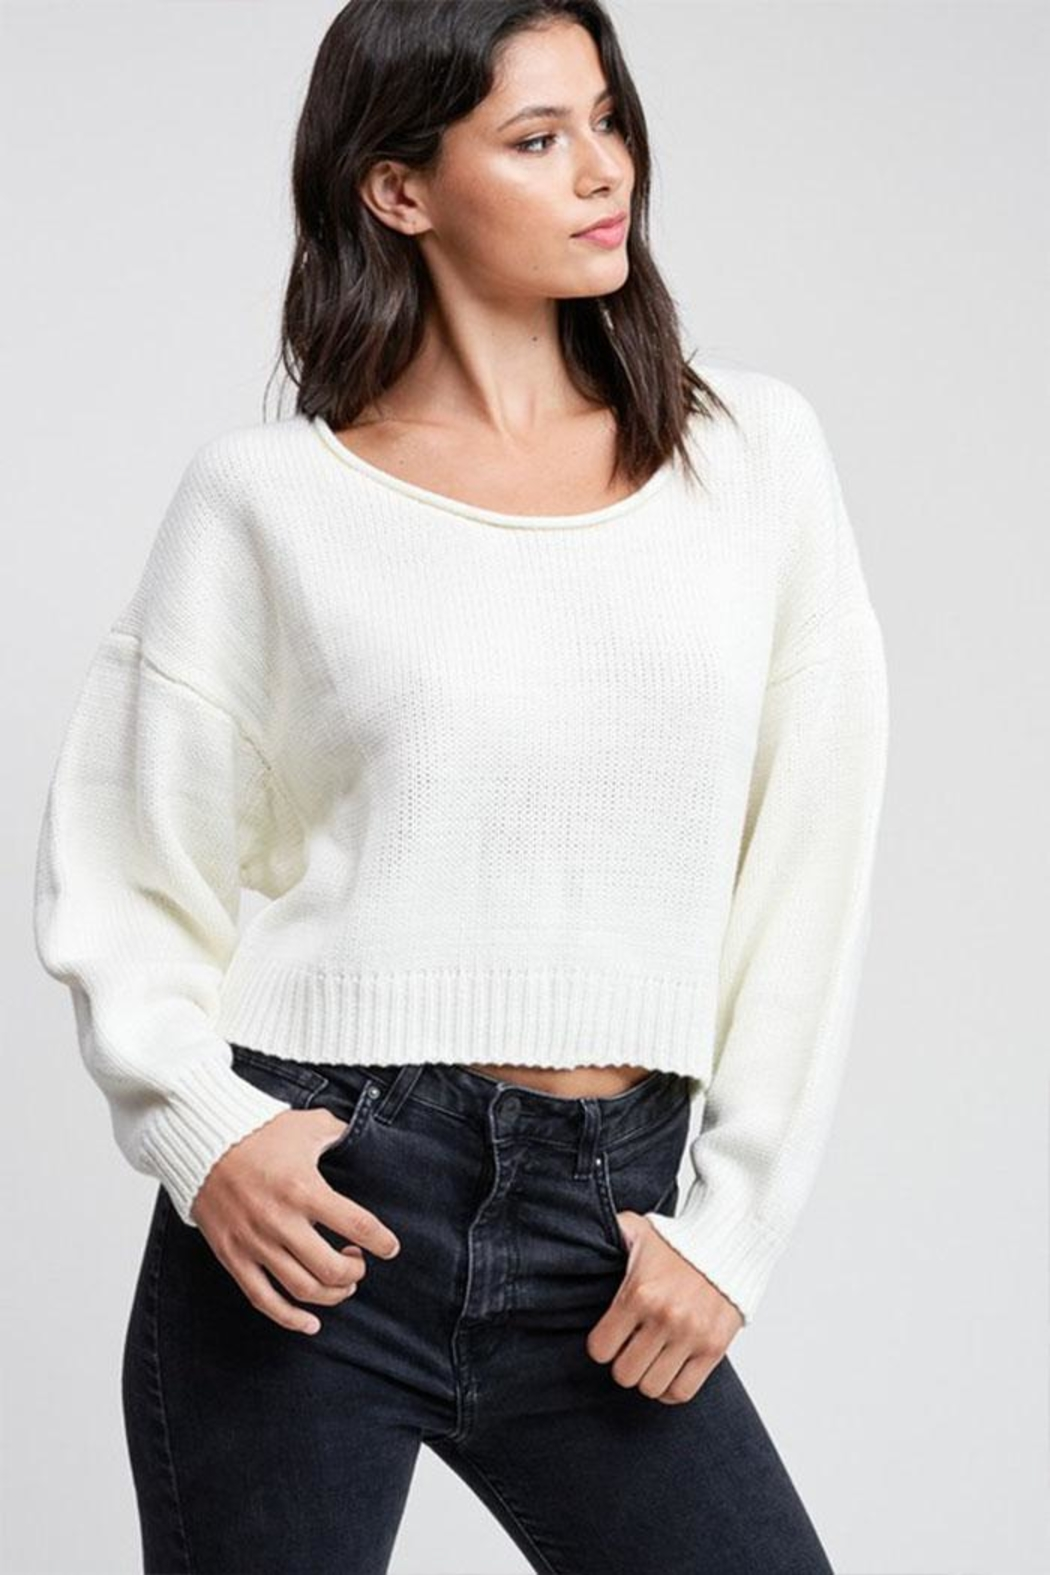 Emory Park Cropped Pullover Sweater - Main Image